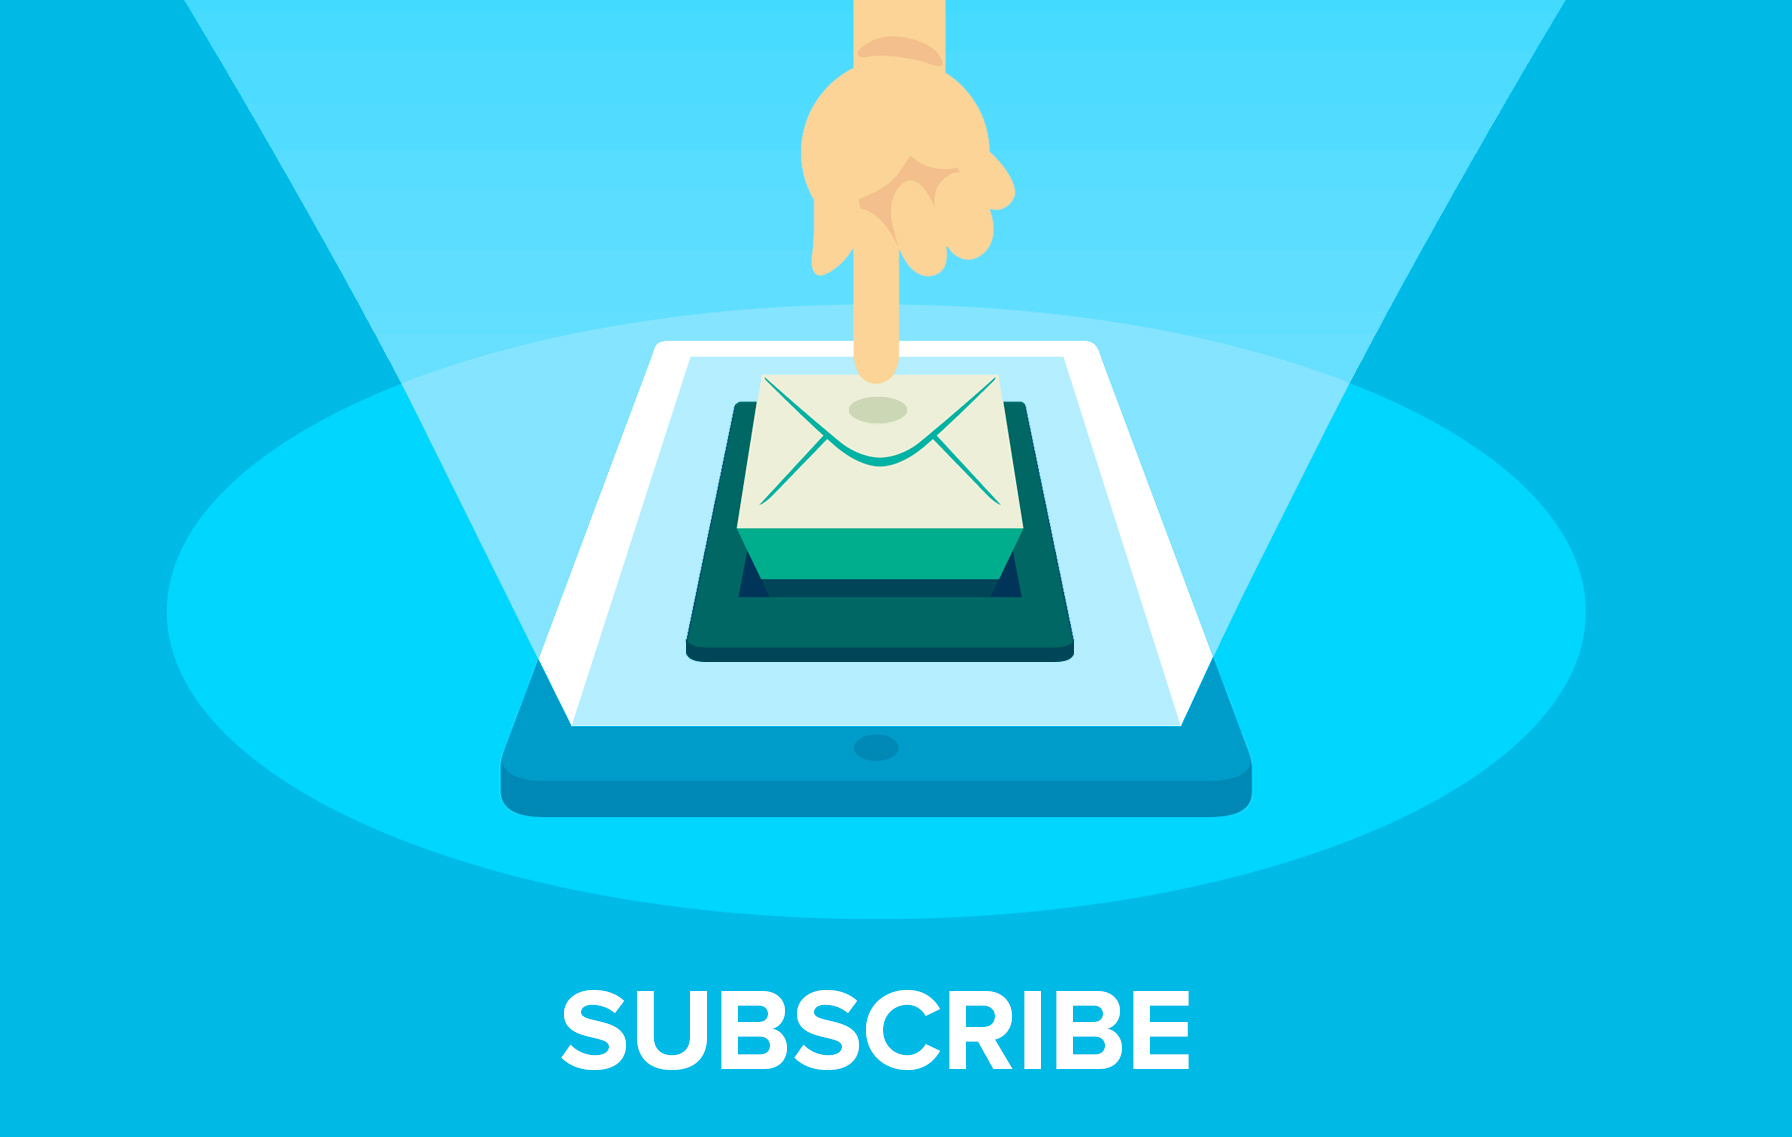 5 Surefire Ways to Grow Your Subscription-Based Mobile App